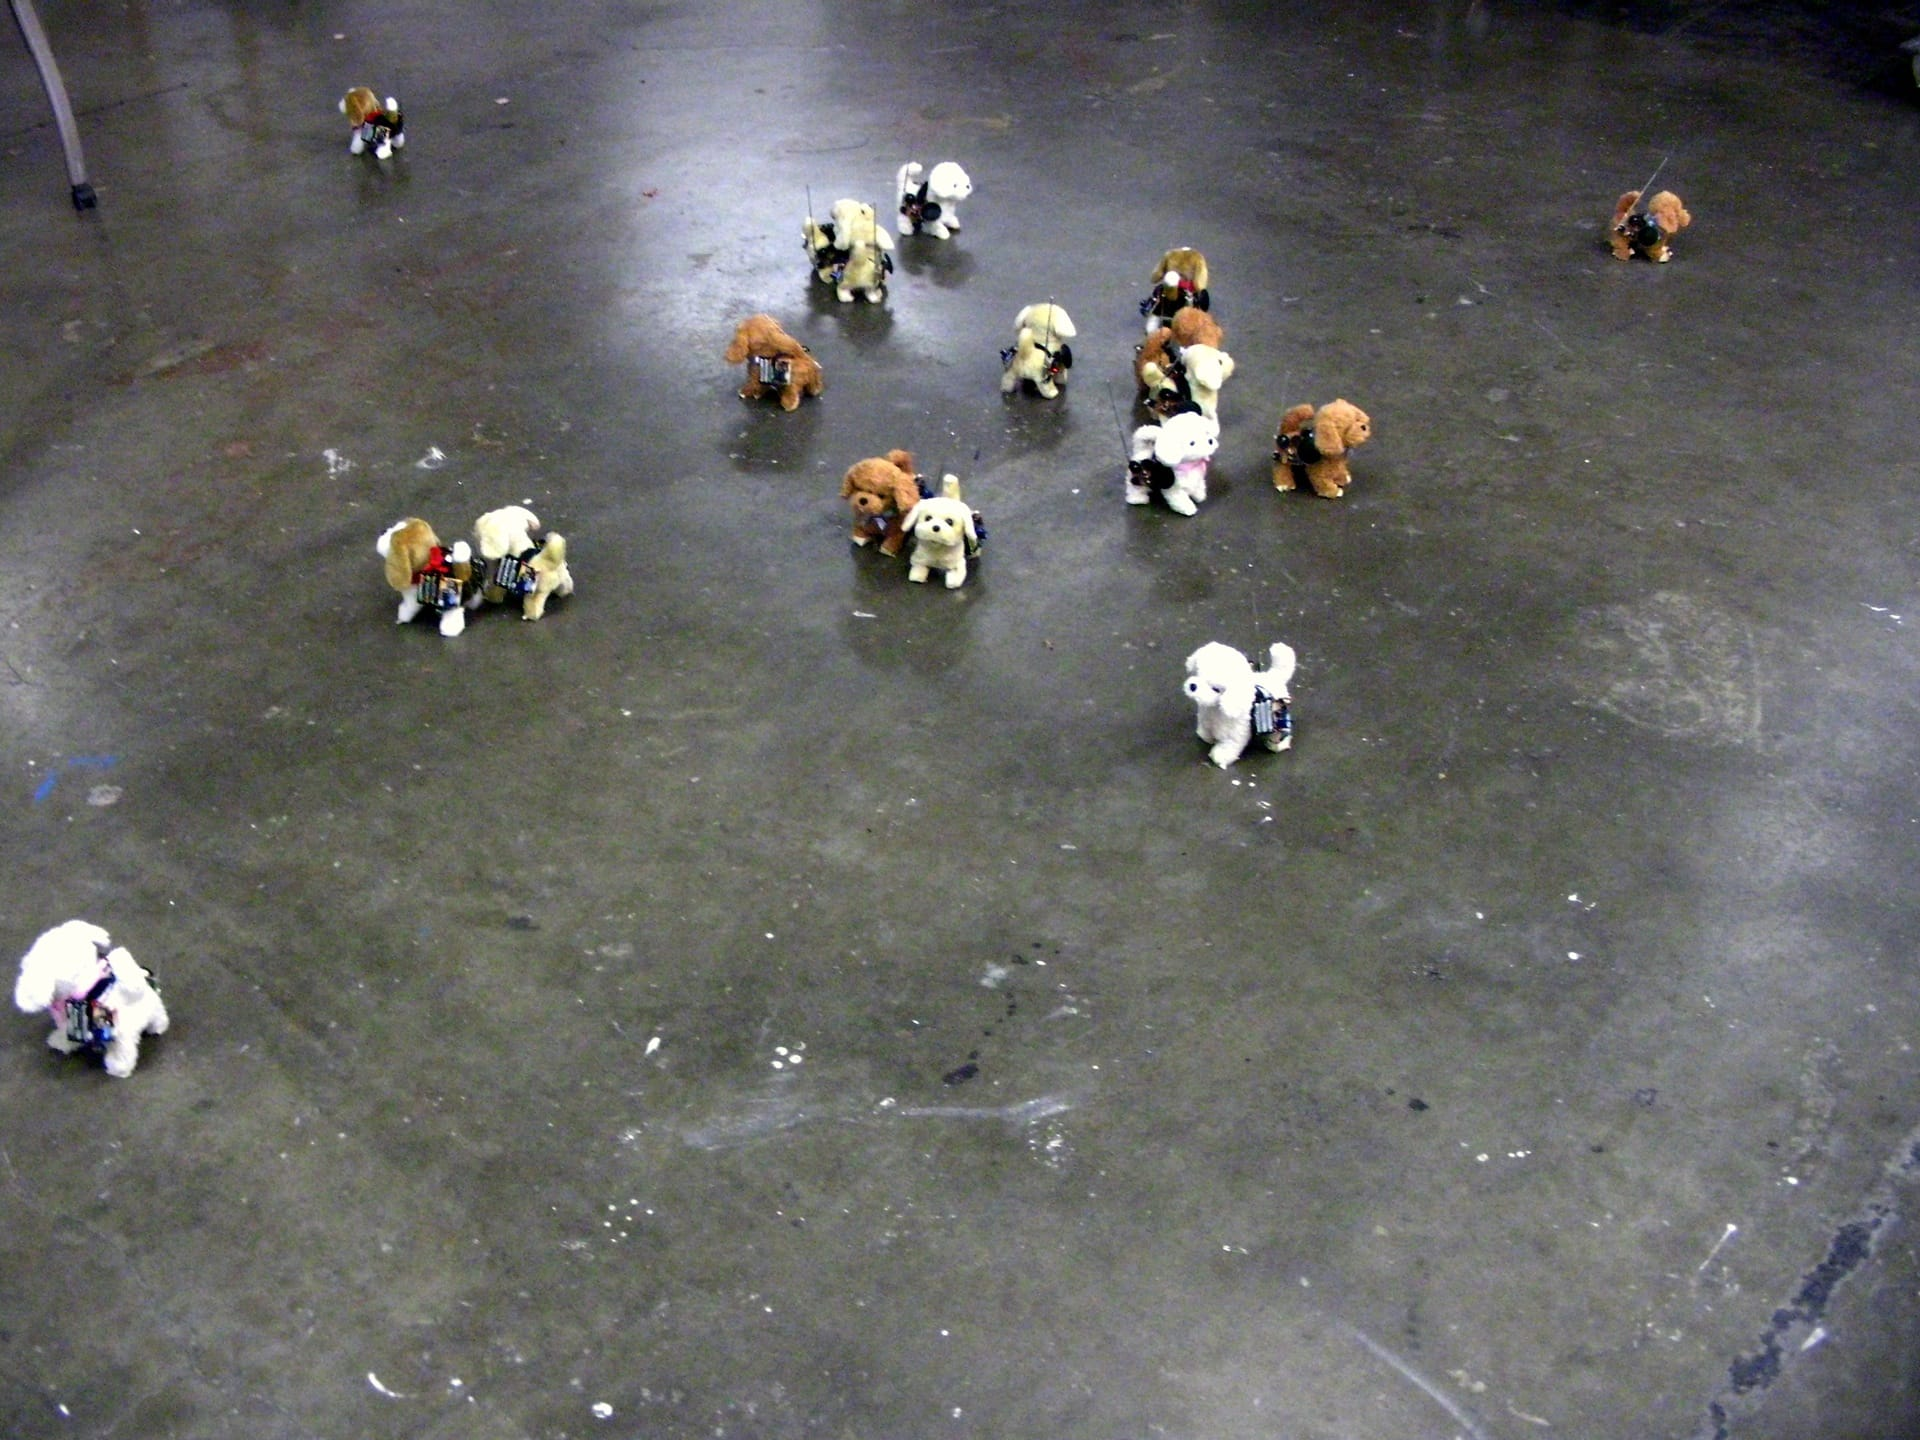 Have robot dog, will travel – dogs with electronics test _184_1920px